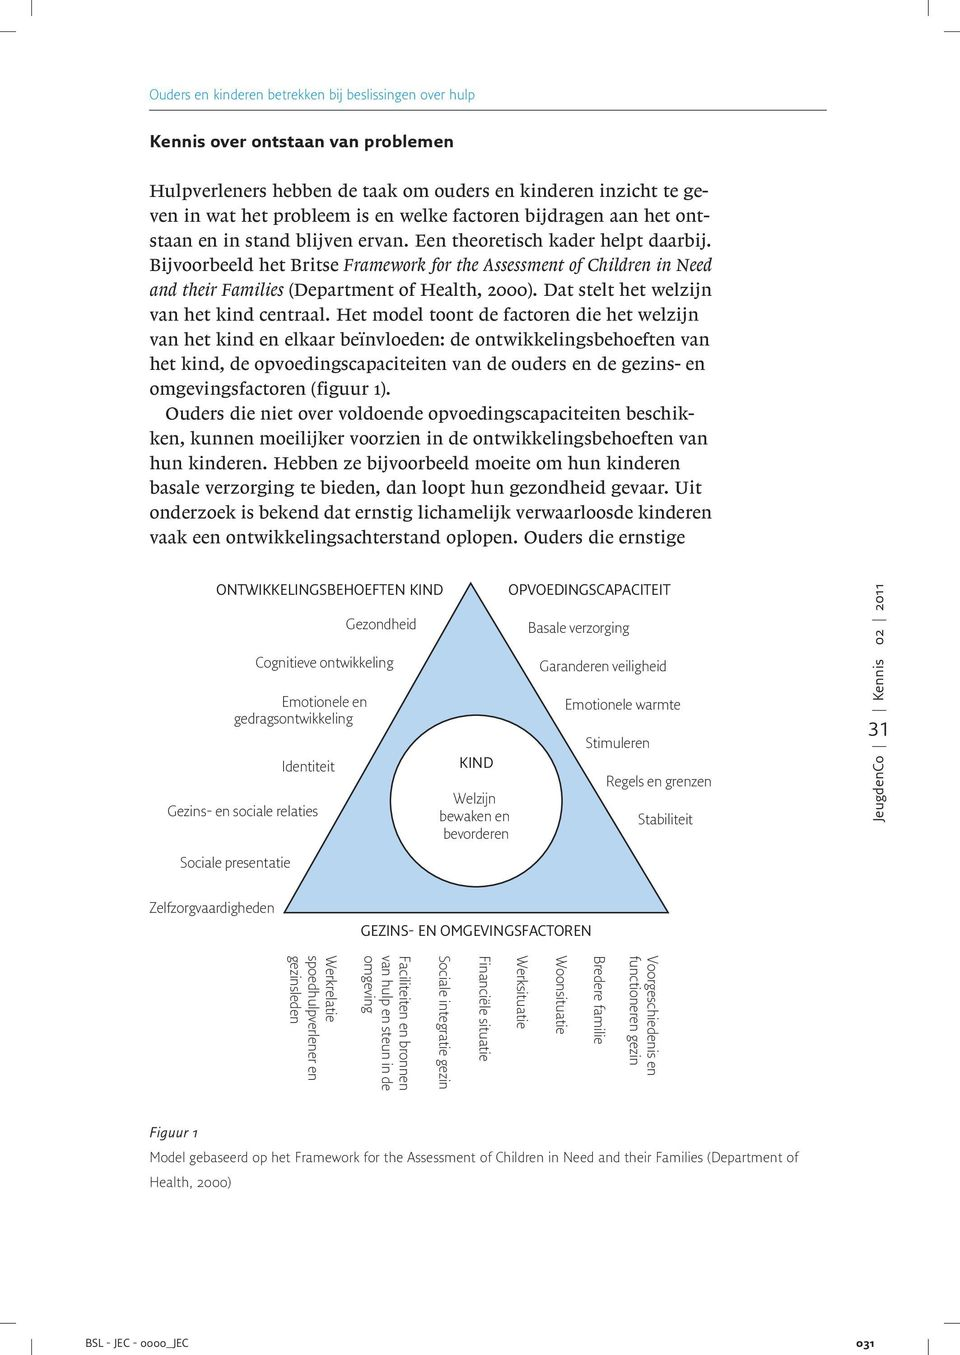 Bijvoorbeeld het Britse Framework for the Assessment of Children in Need and their Families (Department of Health, 2000). Dat stelt het welzijn van het kind centraal.